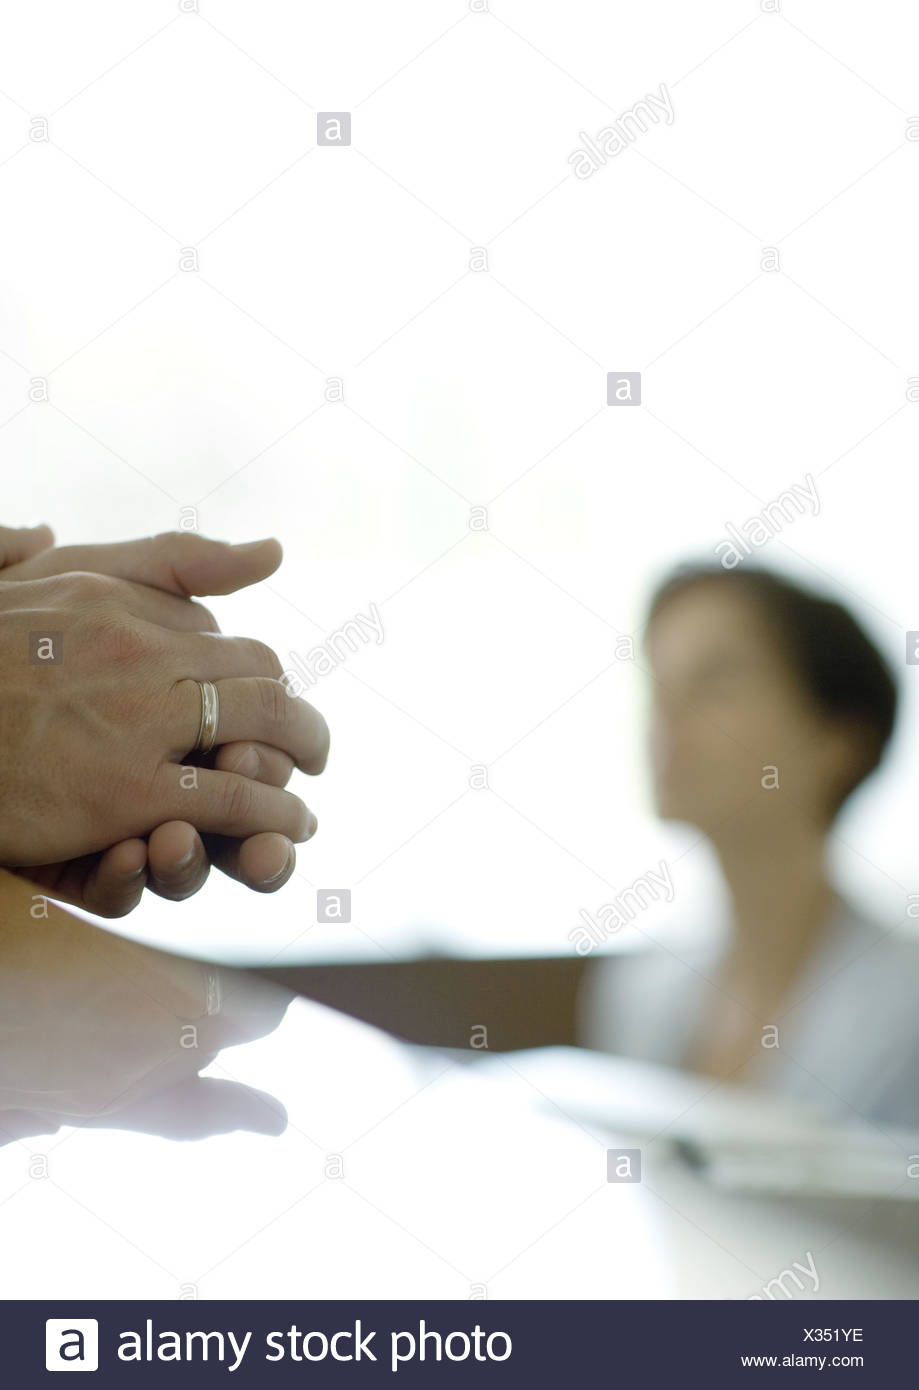 Man's clasped hands on reception desk, receptionist in background - Stock Image